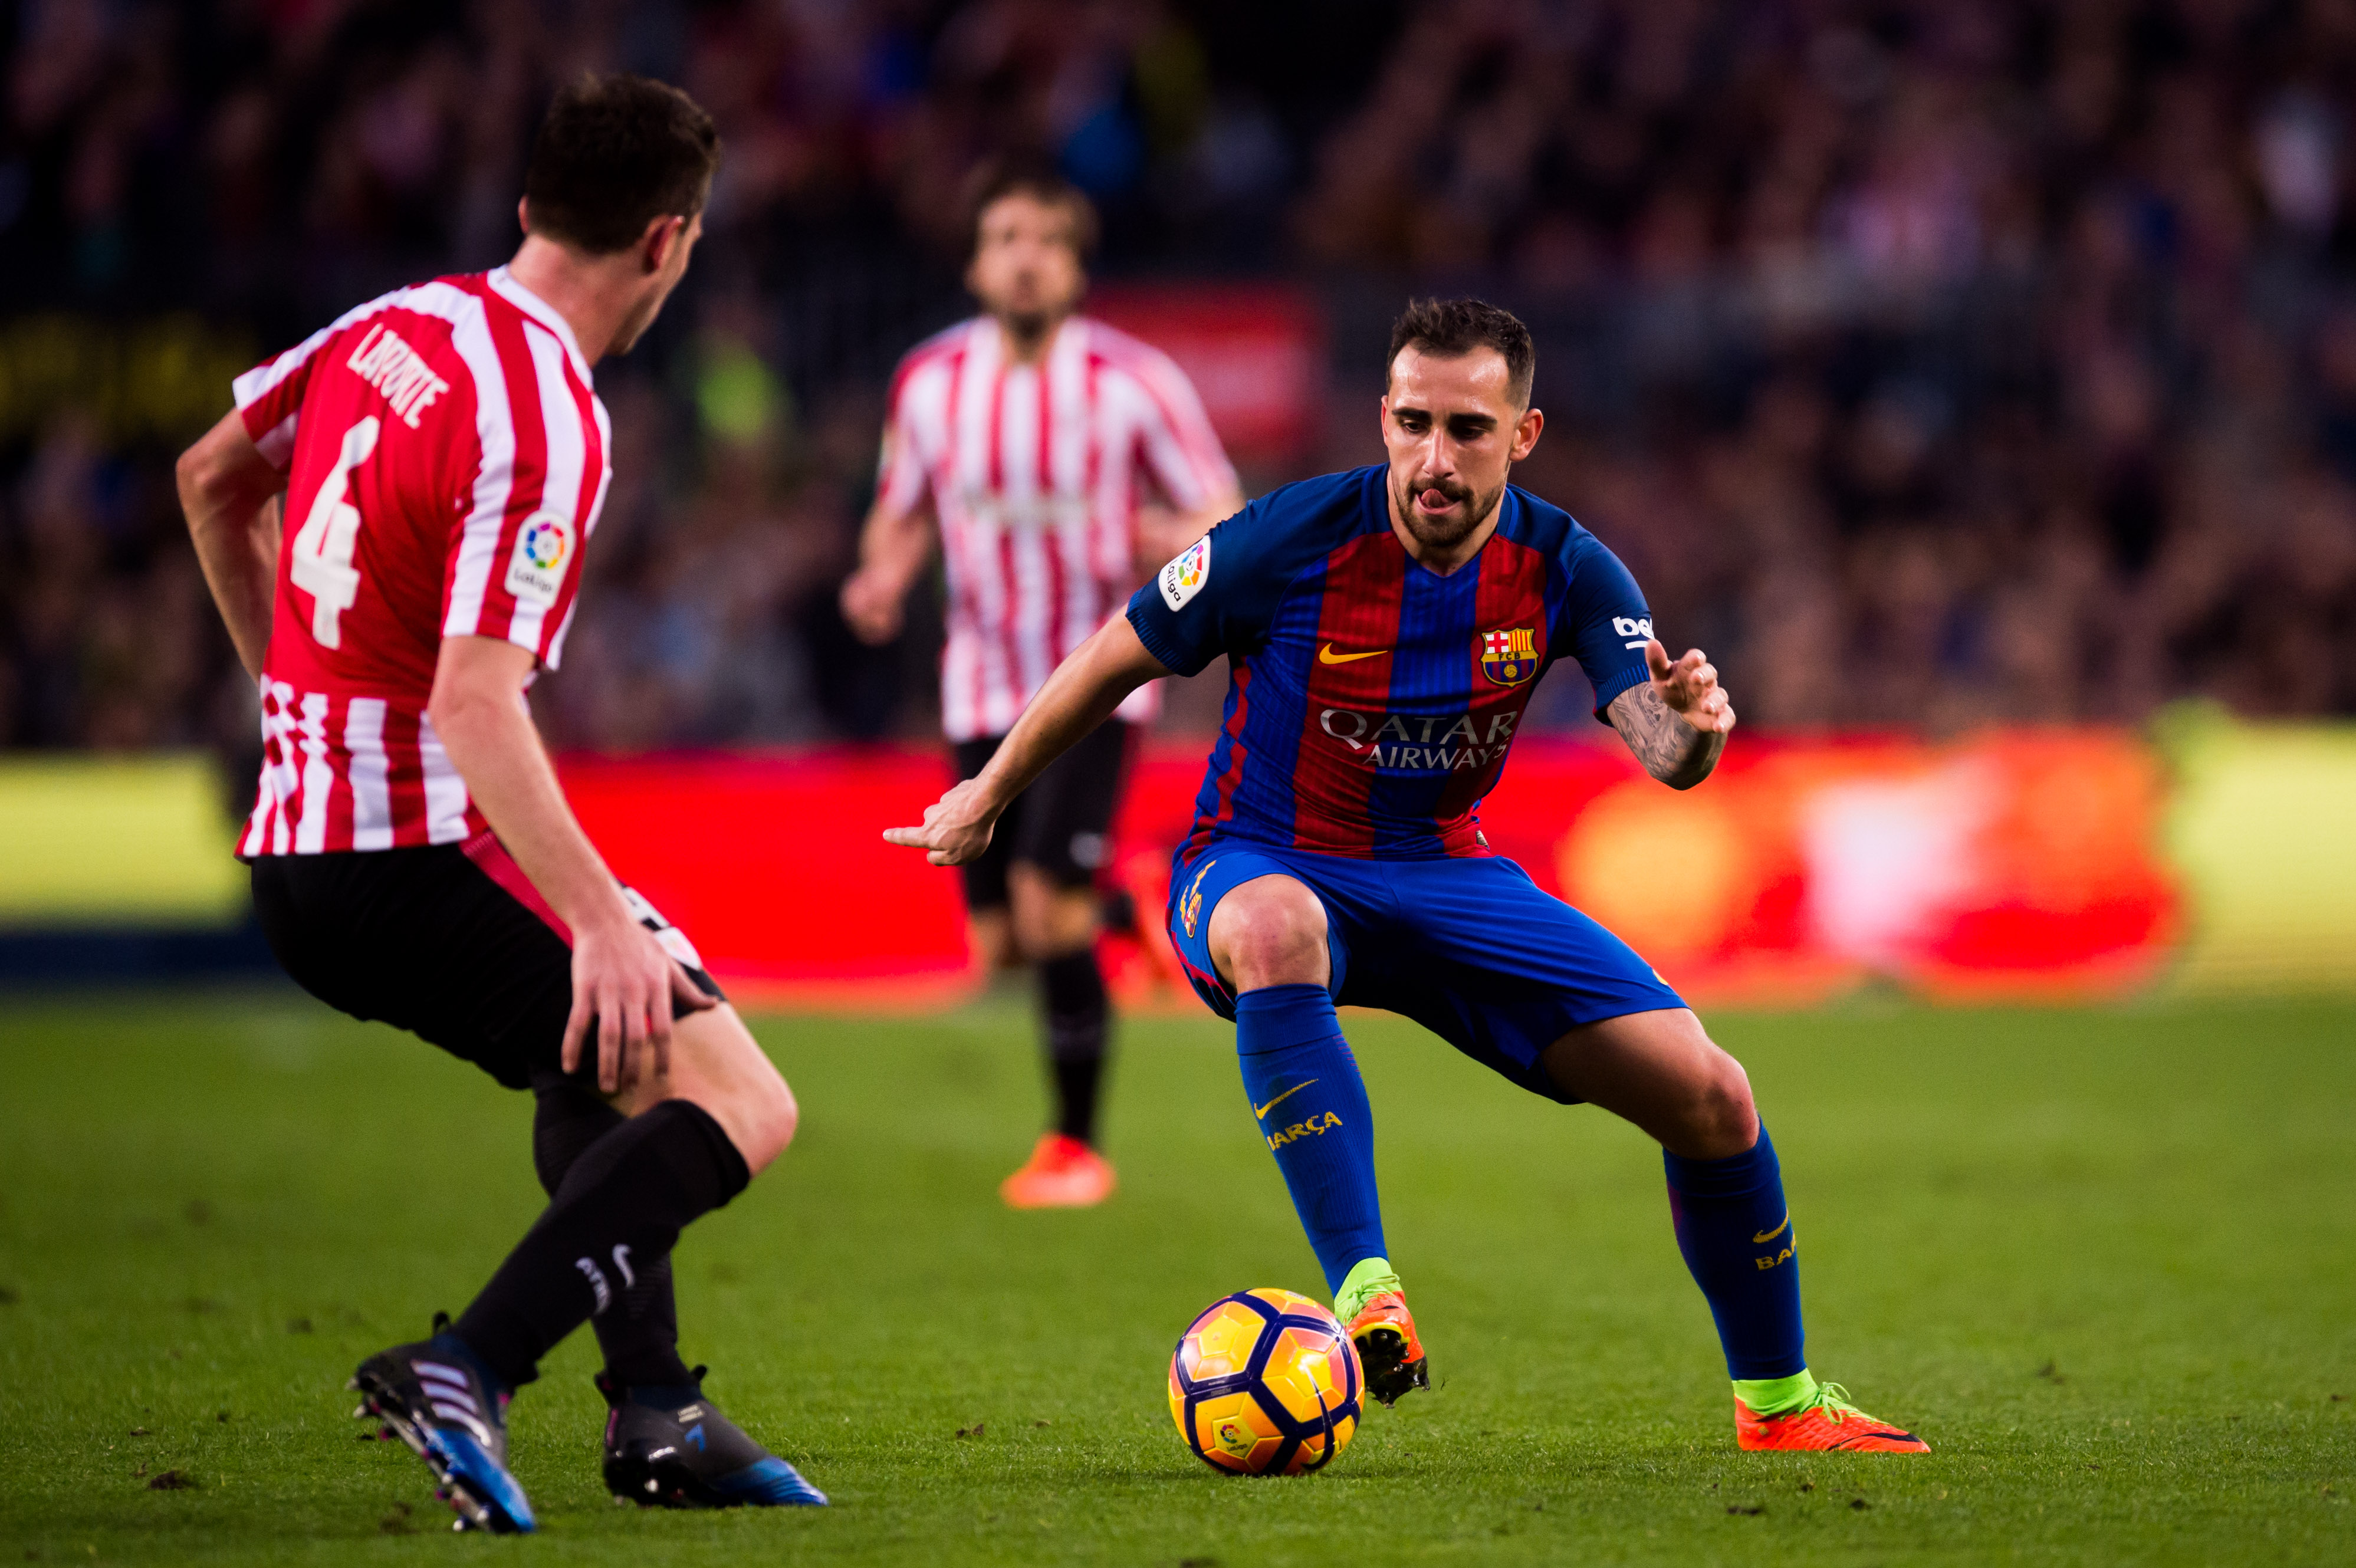 BARCELONA, SPAIN - FEBRUARY 04: Paco Alcacer of FC Barcelona dribbles Aymeric Laporte of Athletic Club during the La Liga match between FC Barcelona and Athletic Club at Camp Nou stadium on February 4, 2017 in Barcelona, Spain. (Photo by Alex Caparros/Getty Images)